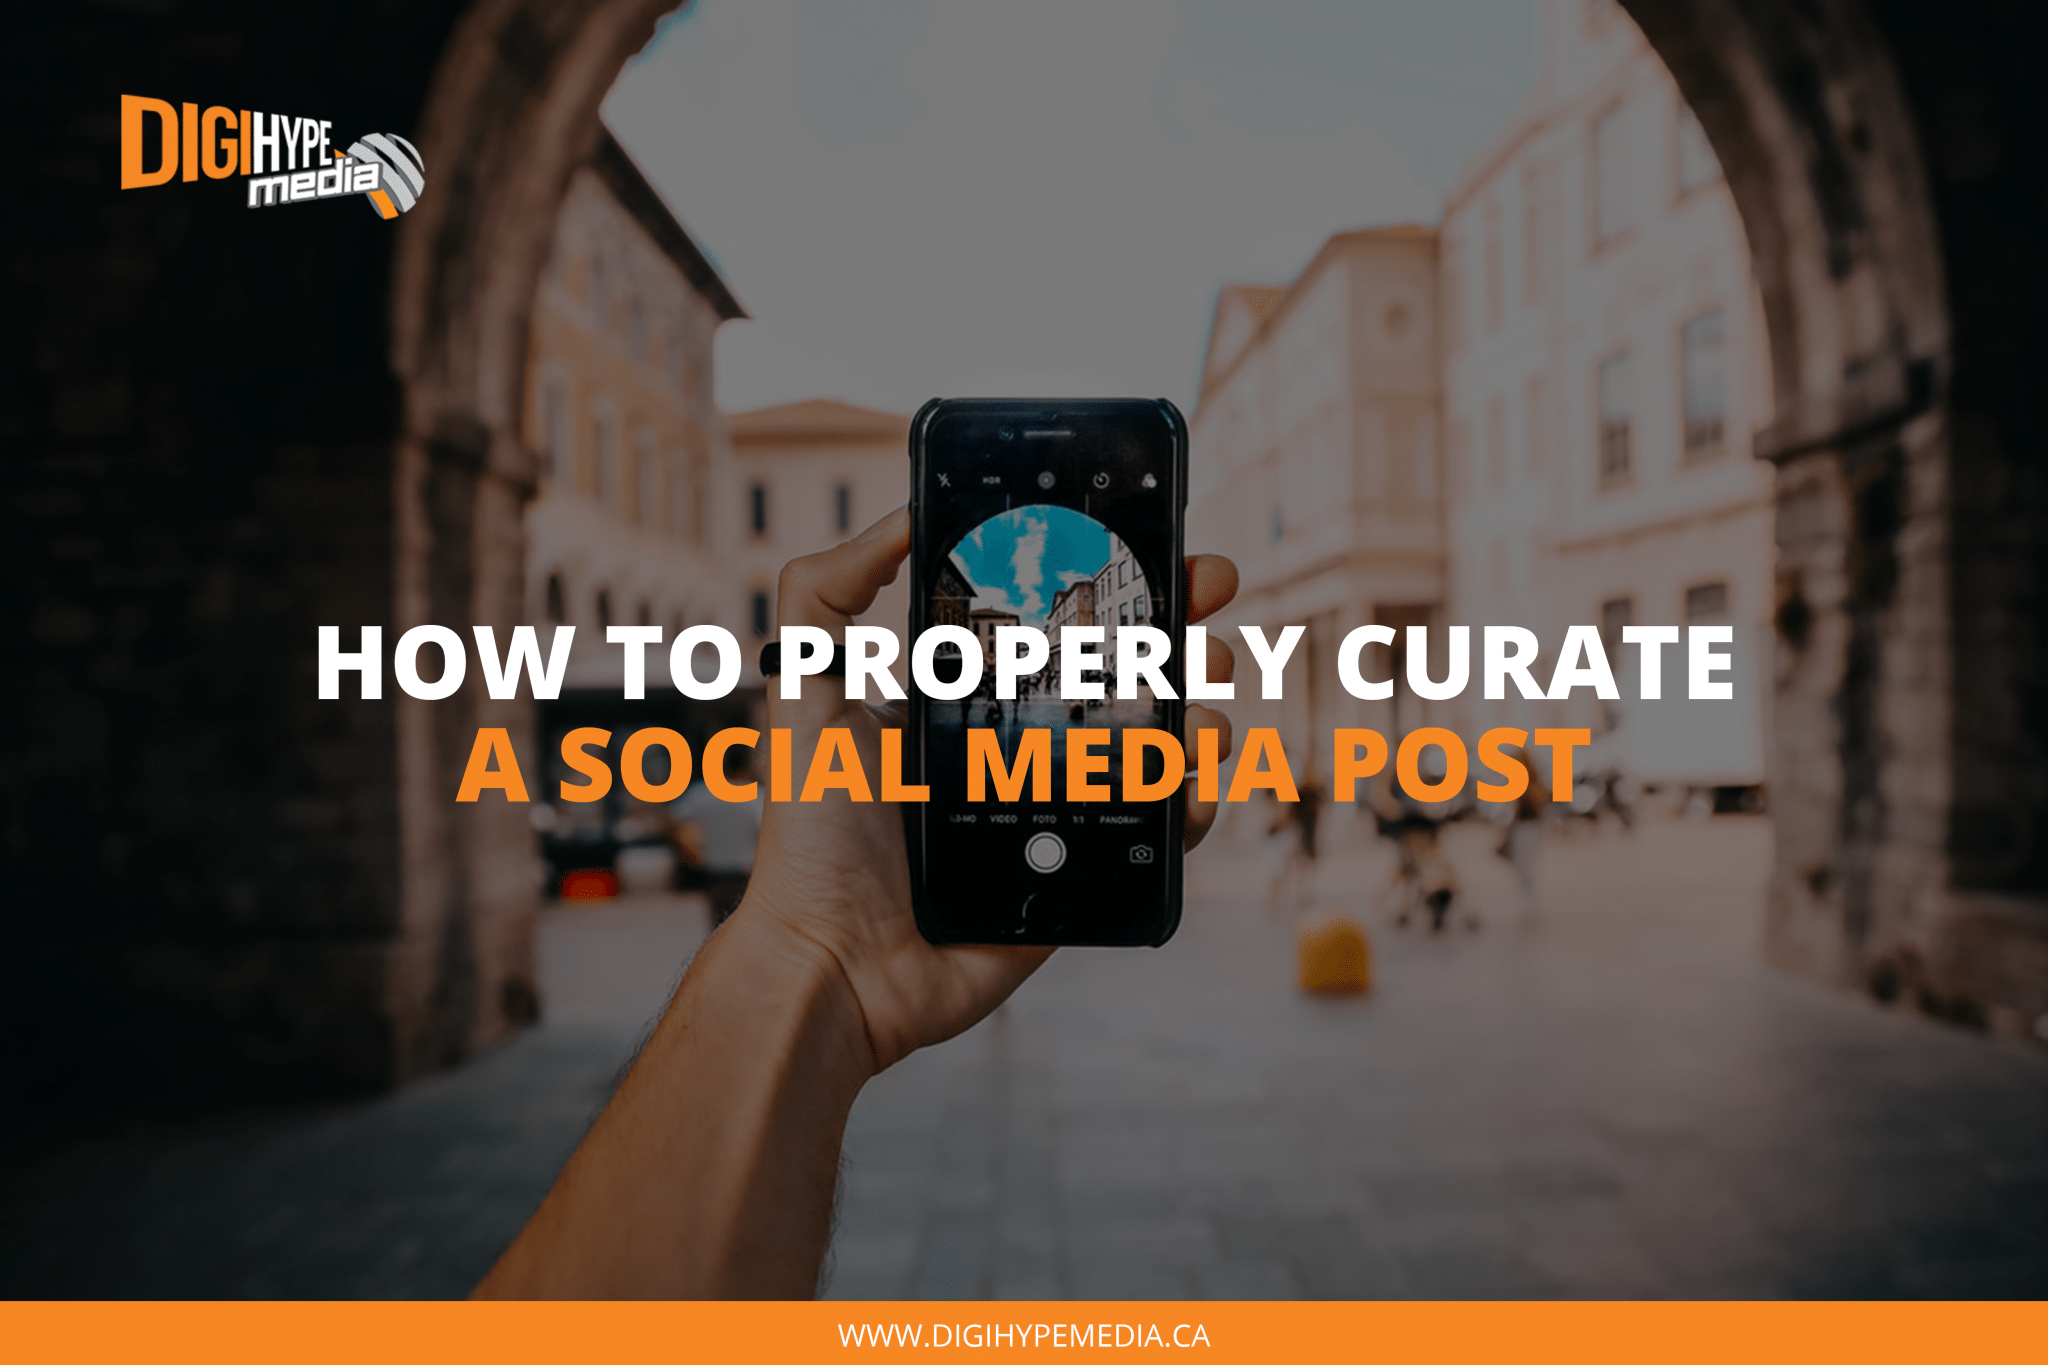 How To Properly Curate A Social Media Post